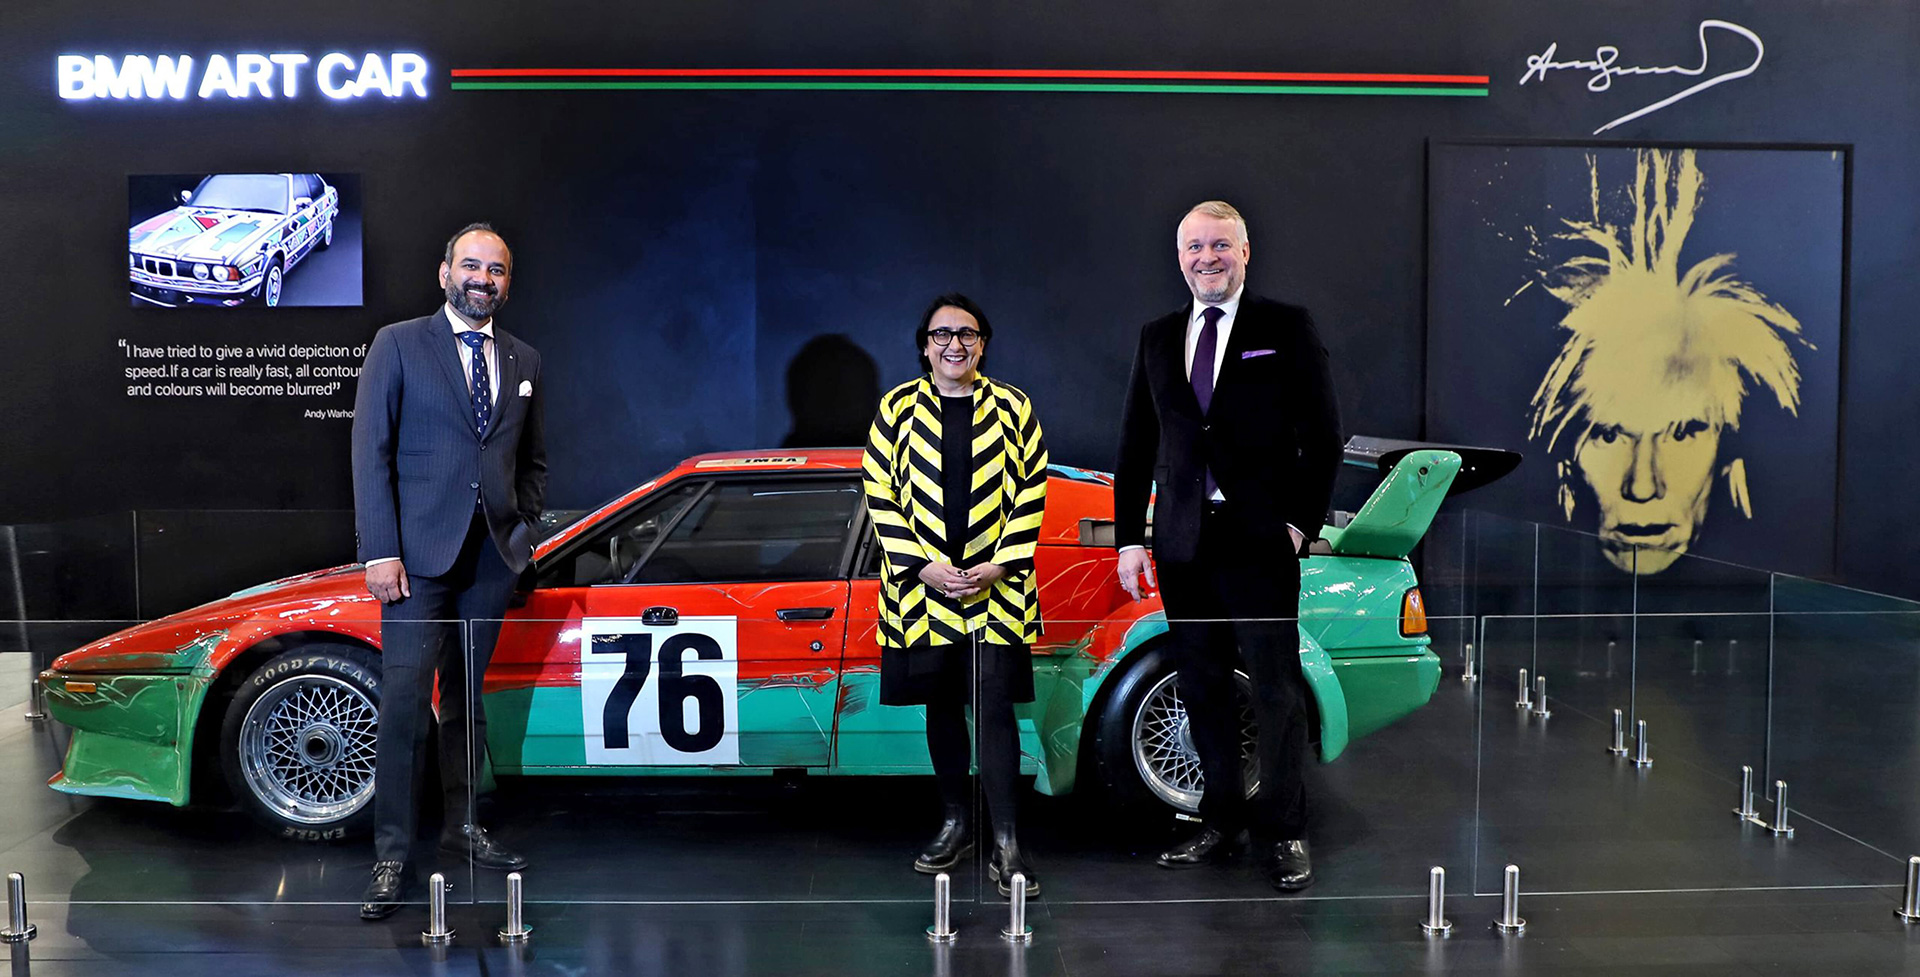 Rudratej Singh, President and CEO BMW Group India; Jagdip Jagpal, Fair Director, India Art Fair; Thomas Girst, Head of Cultural Engagement, BMW Group | Andy Warhol | India Art Fair | STIRworld